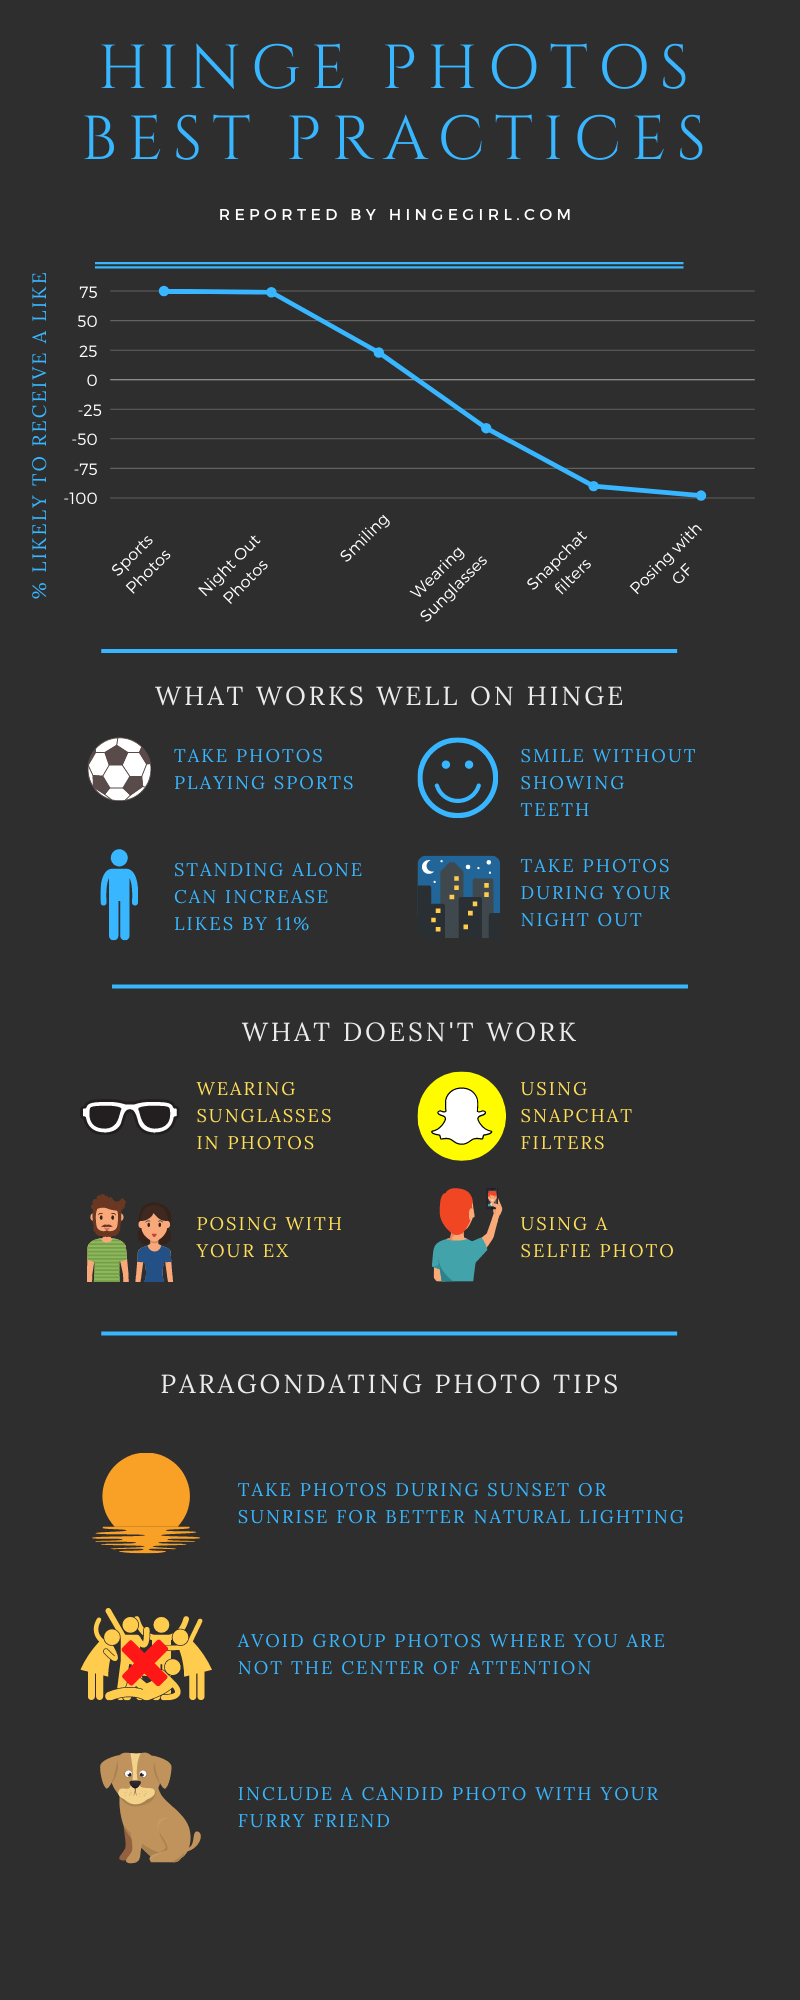 Hinge dating app photos best practices. Photos taken while playing sports and during your night out can improve your likeliness to receive a like by 75%. What works well on Hinge for men is taking photos playing sports, smiling without showing teeth, standing alone increases likes by 11%, and photos taken during a night out should be included. What doesn't work well is using snapchat features, posing with a significant other, taking selfies, and wearing sunglasses. ParagonDating recommends that you take photos during sunset and sunrise, taking photos with your dog, and taking group shots where you are the center of attention.